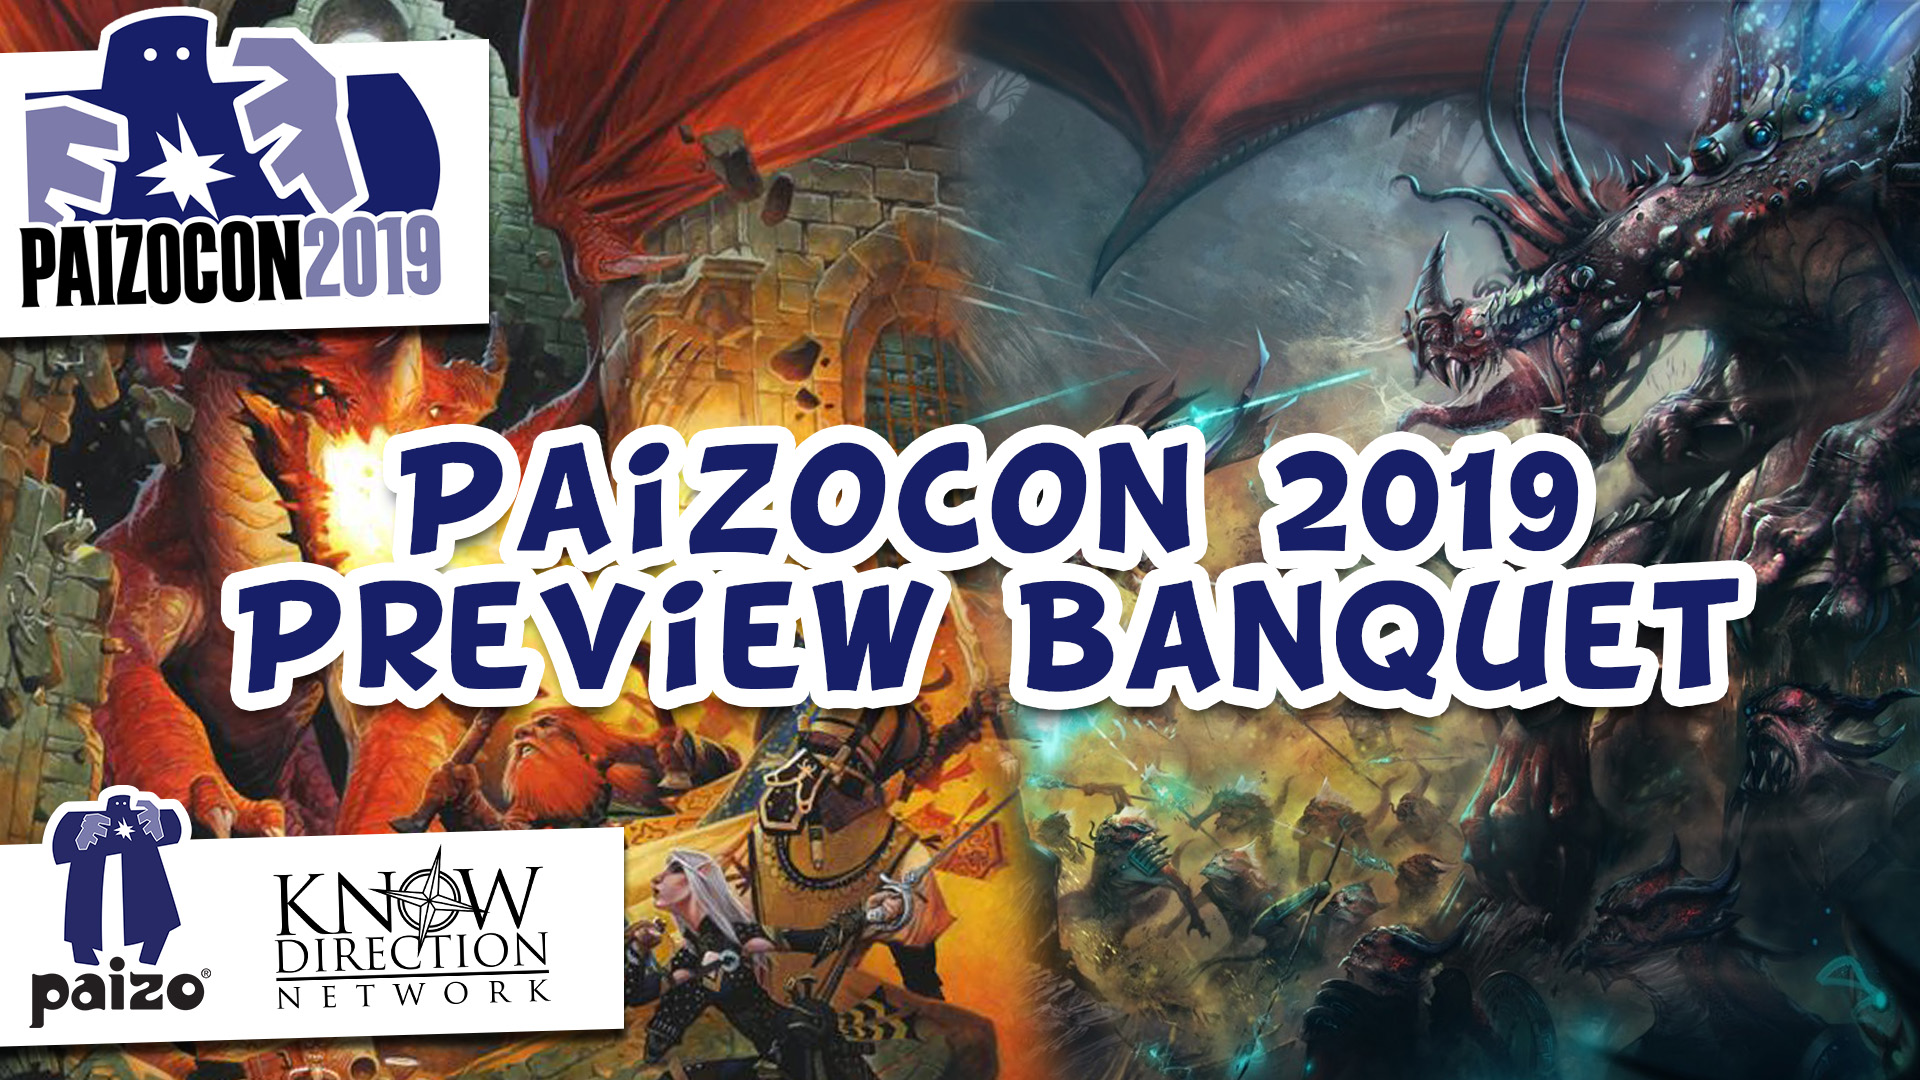 PaizoCon 2019 Preview Banquet